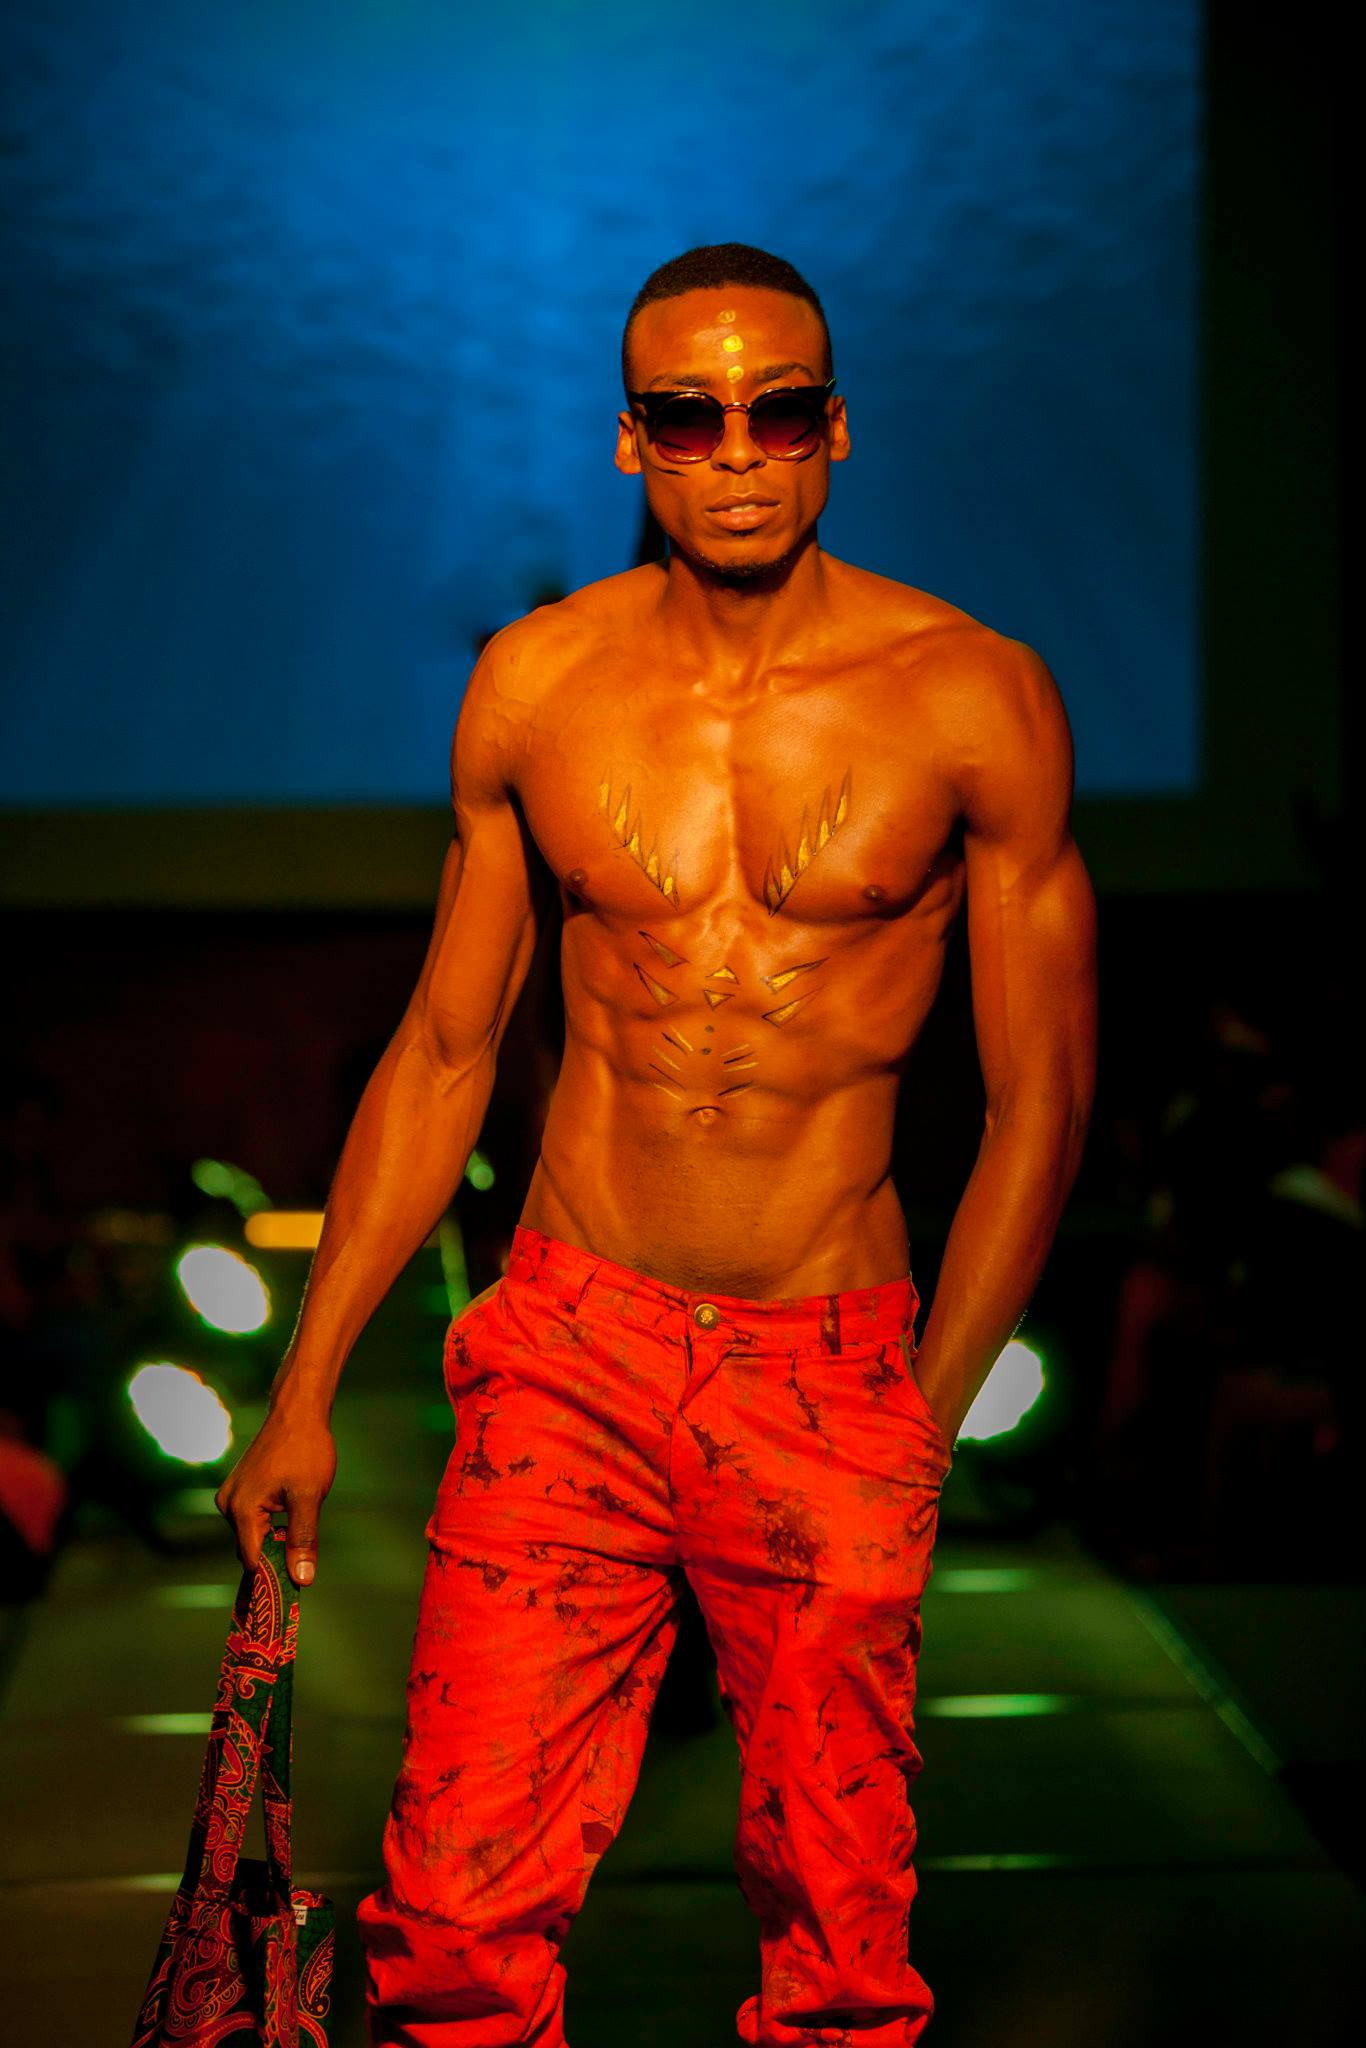 Manciny Migwi and Her Take on Men's Wear Fashion in Kenya